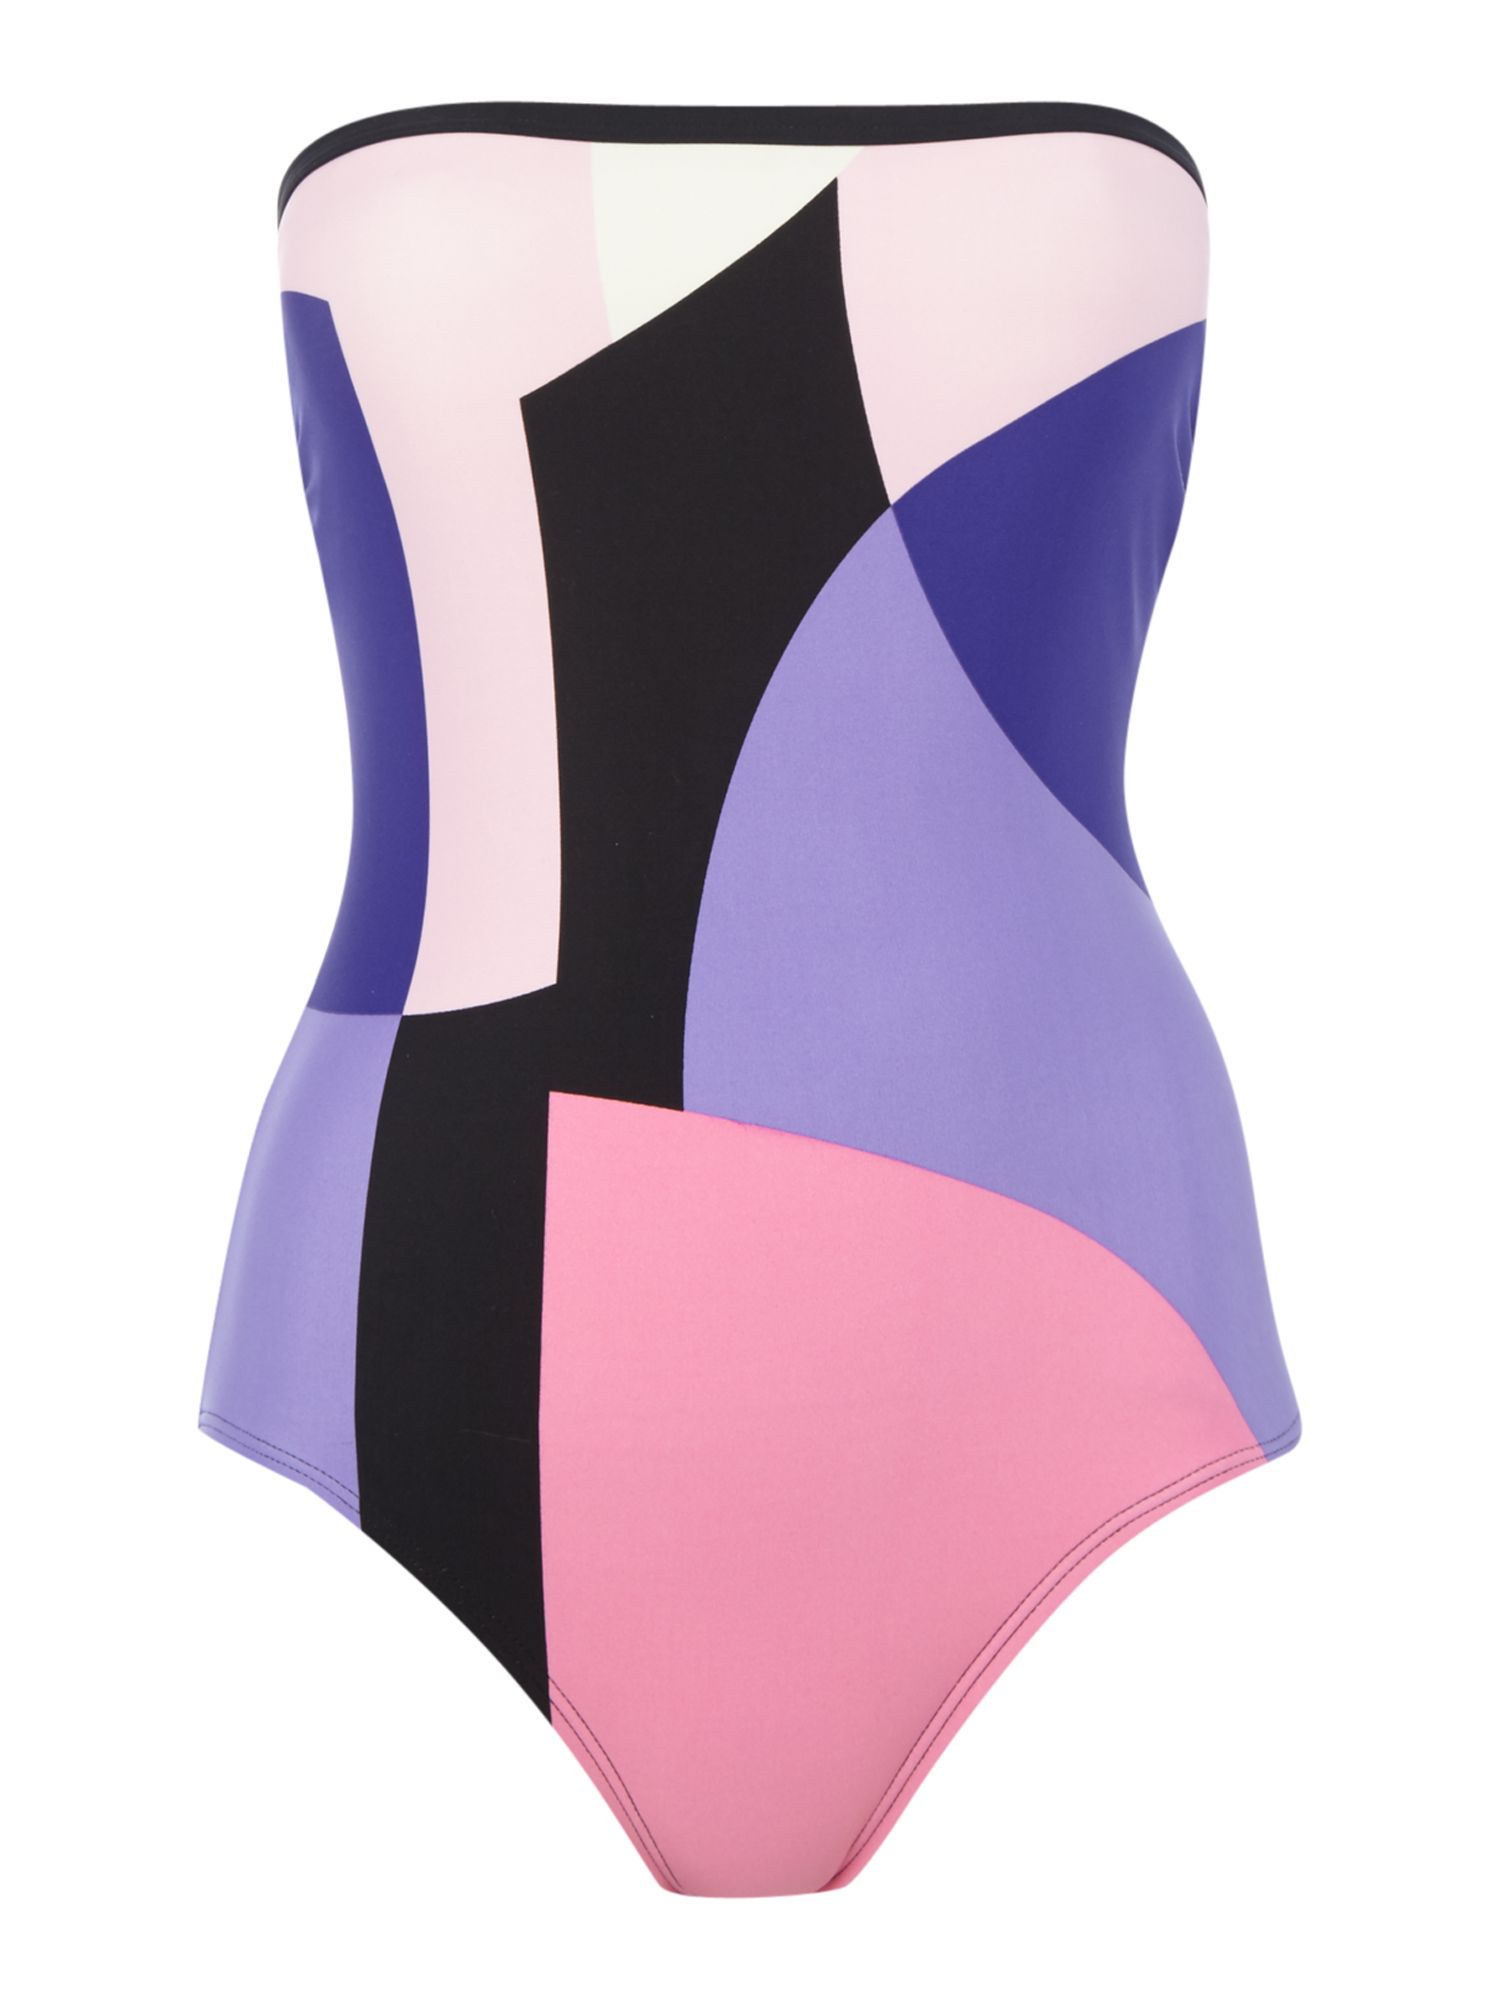 Kate Spade New York Limelight bandeau swimsuit, Multi-Coloured